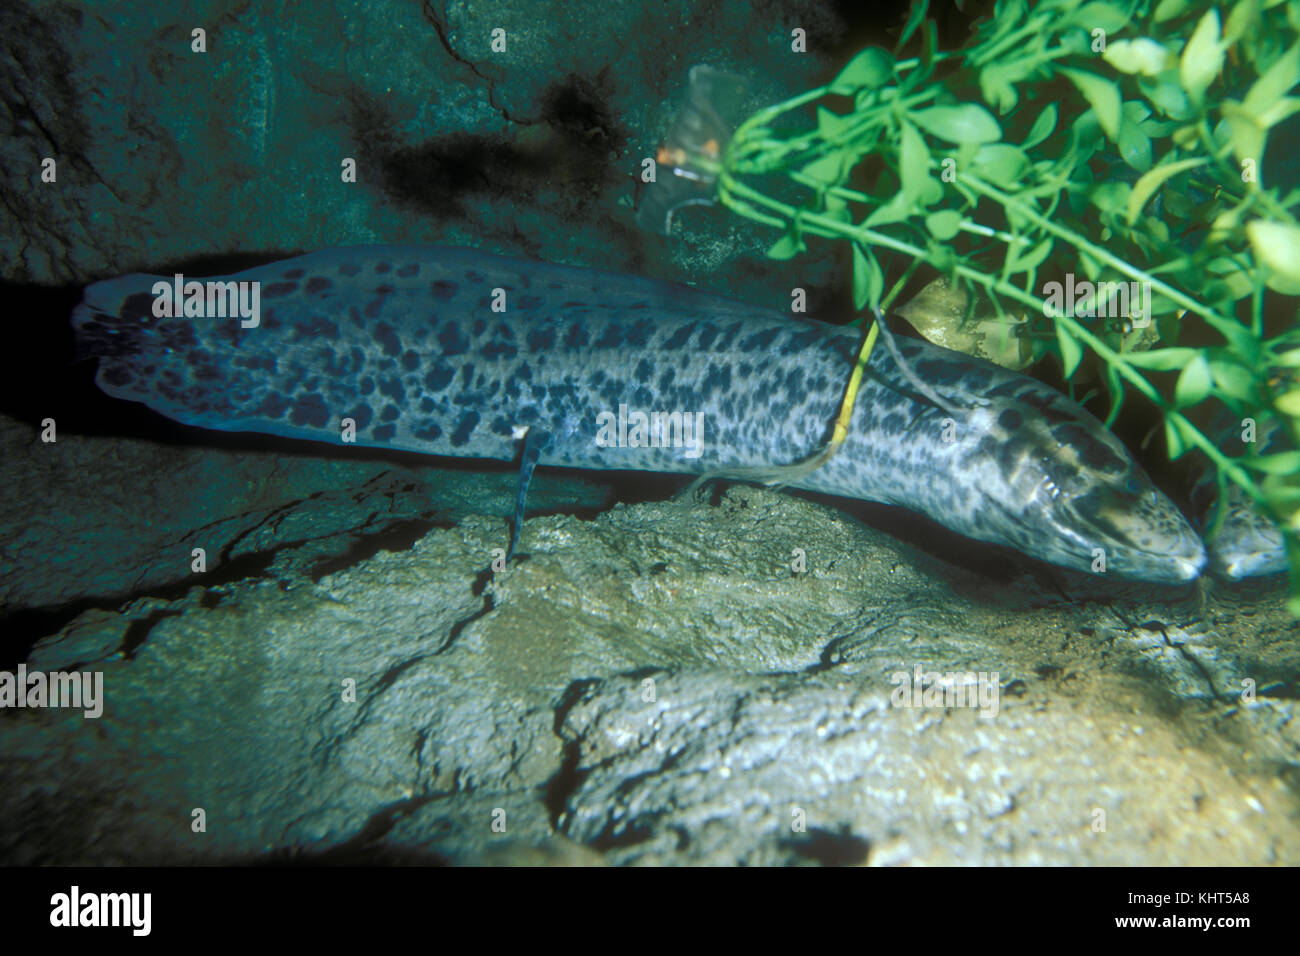 African Lungfish, Protopterus annectens - Stock Image